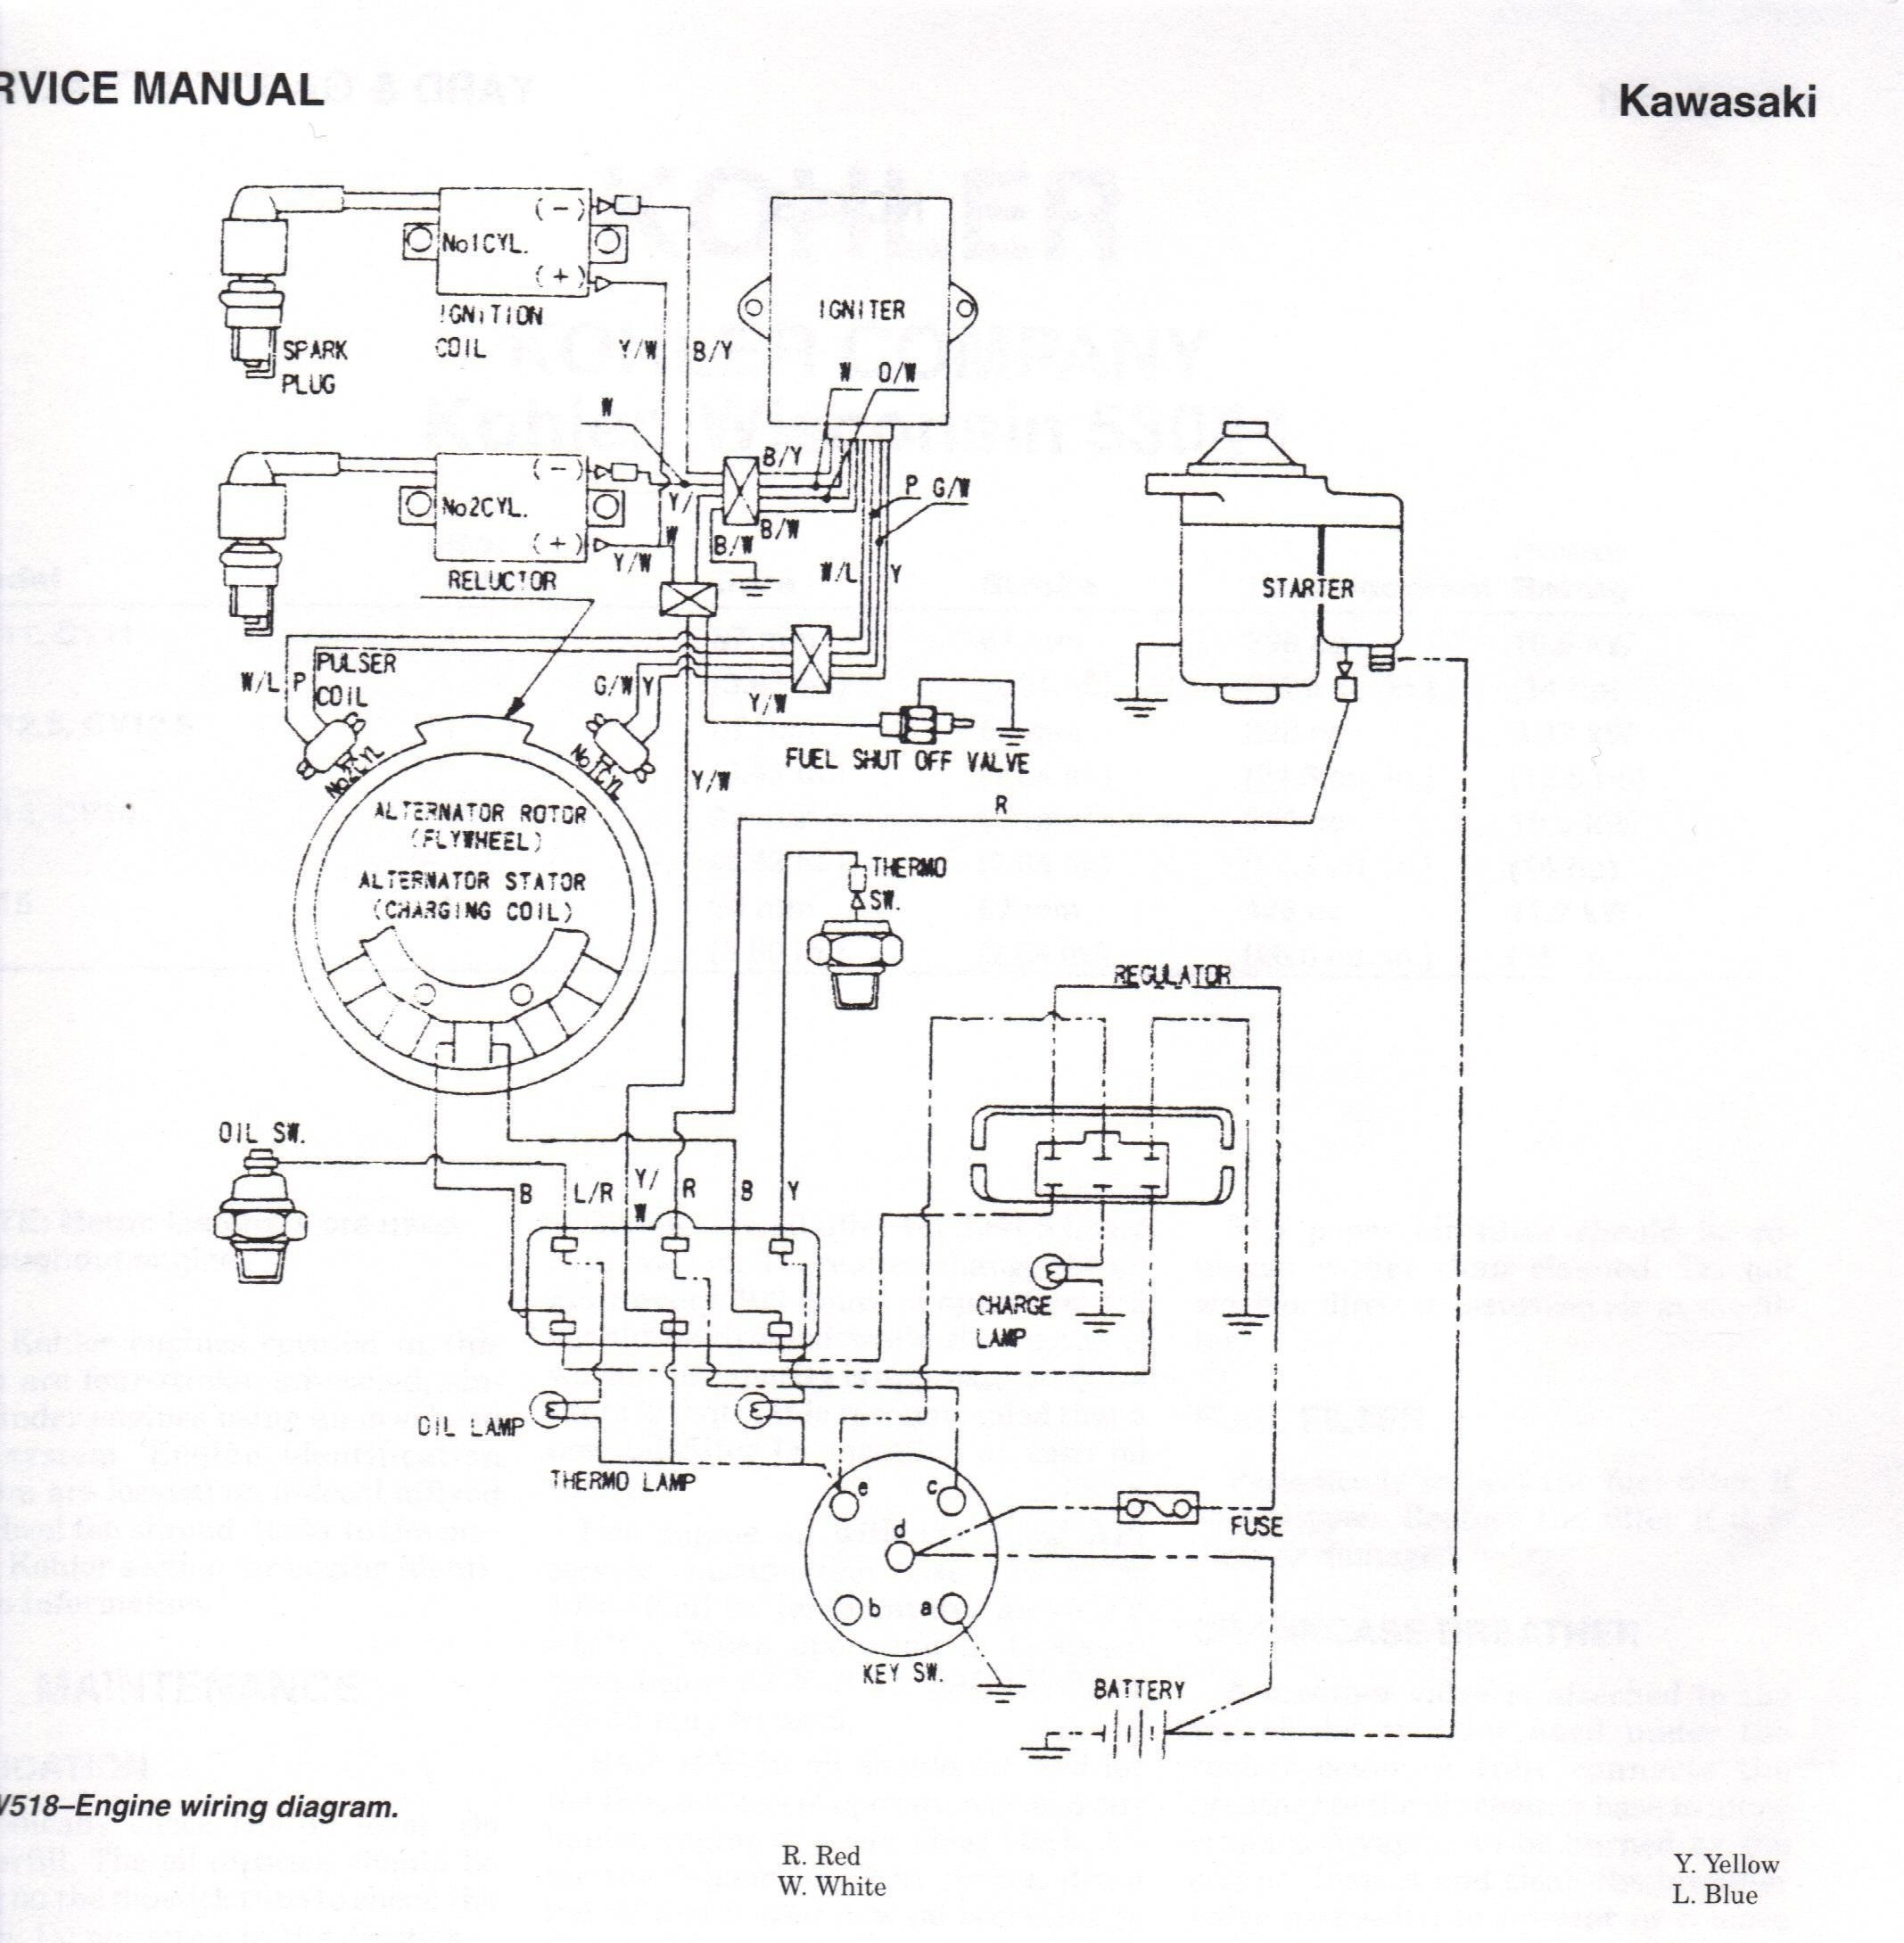 John Deere Electrical Bo Wiring Systems Ct 9164] Gator Xuv 620i Wiring Diagram Of John Deere Electrical Bo Wiring Systems